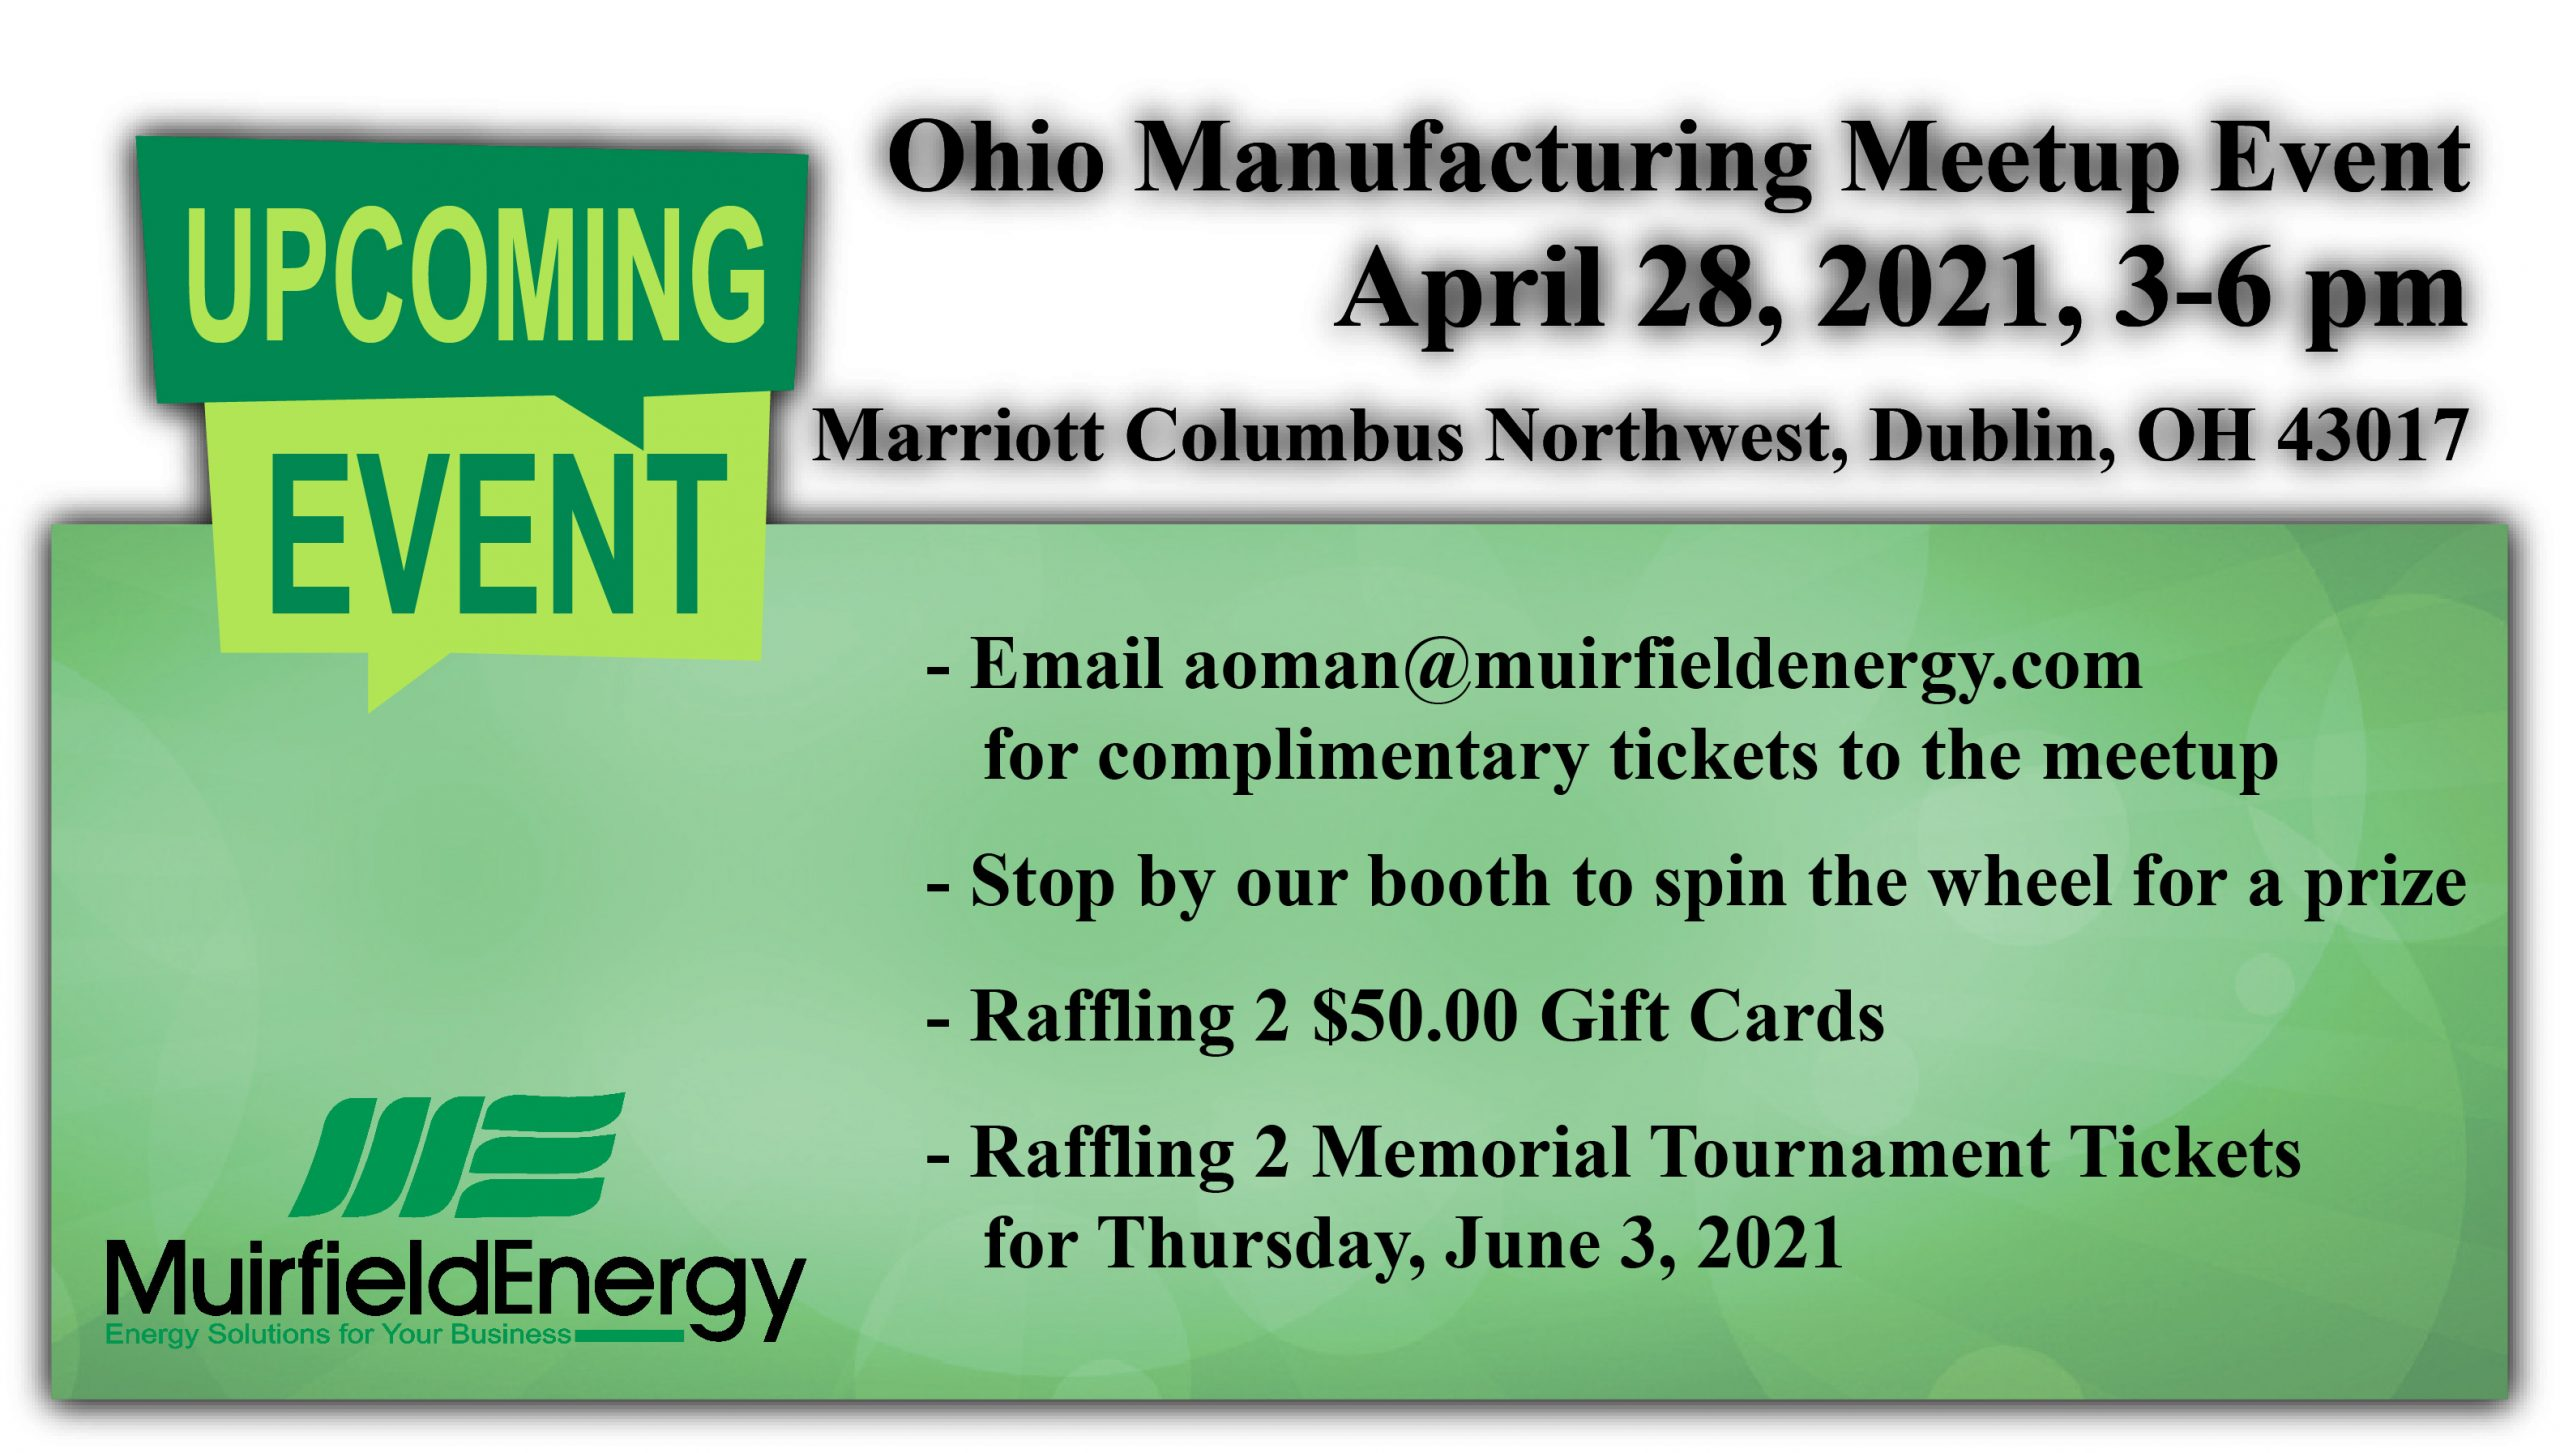 Ohio Manufacturers Meet Up Event April 28, 2021